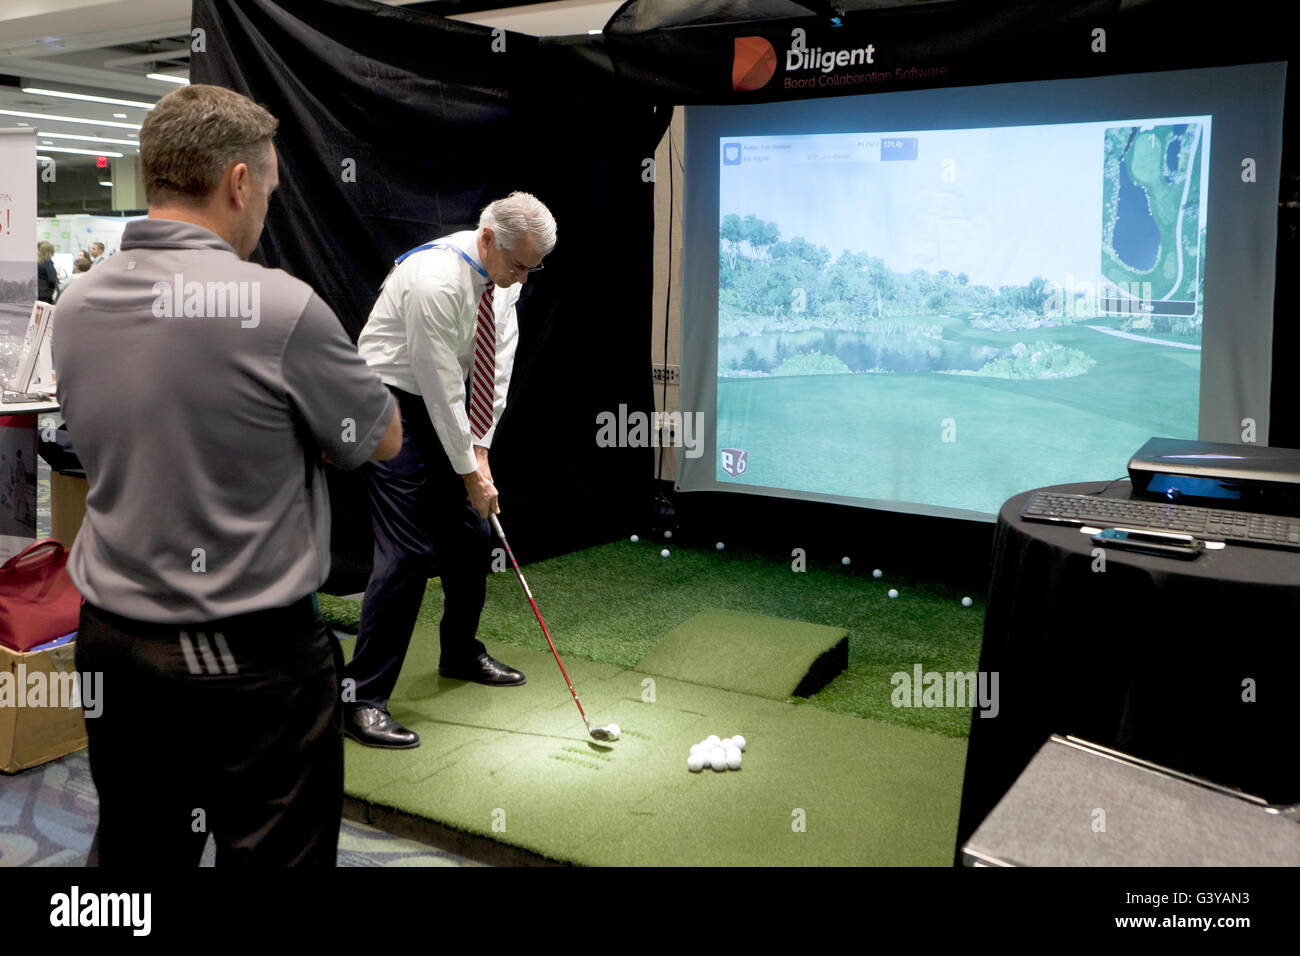 businessman teeing off at a golf simulator - USA - Stock Image